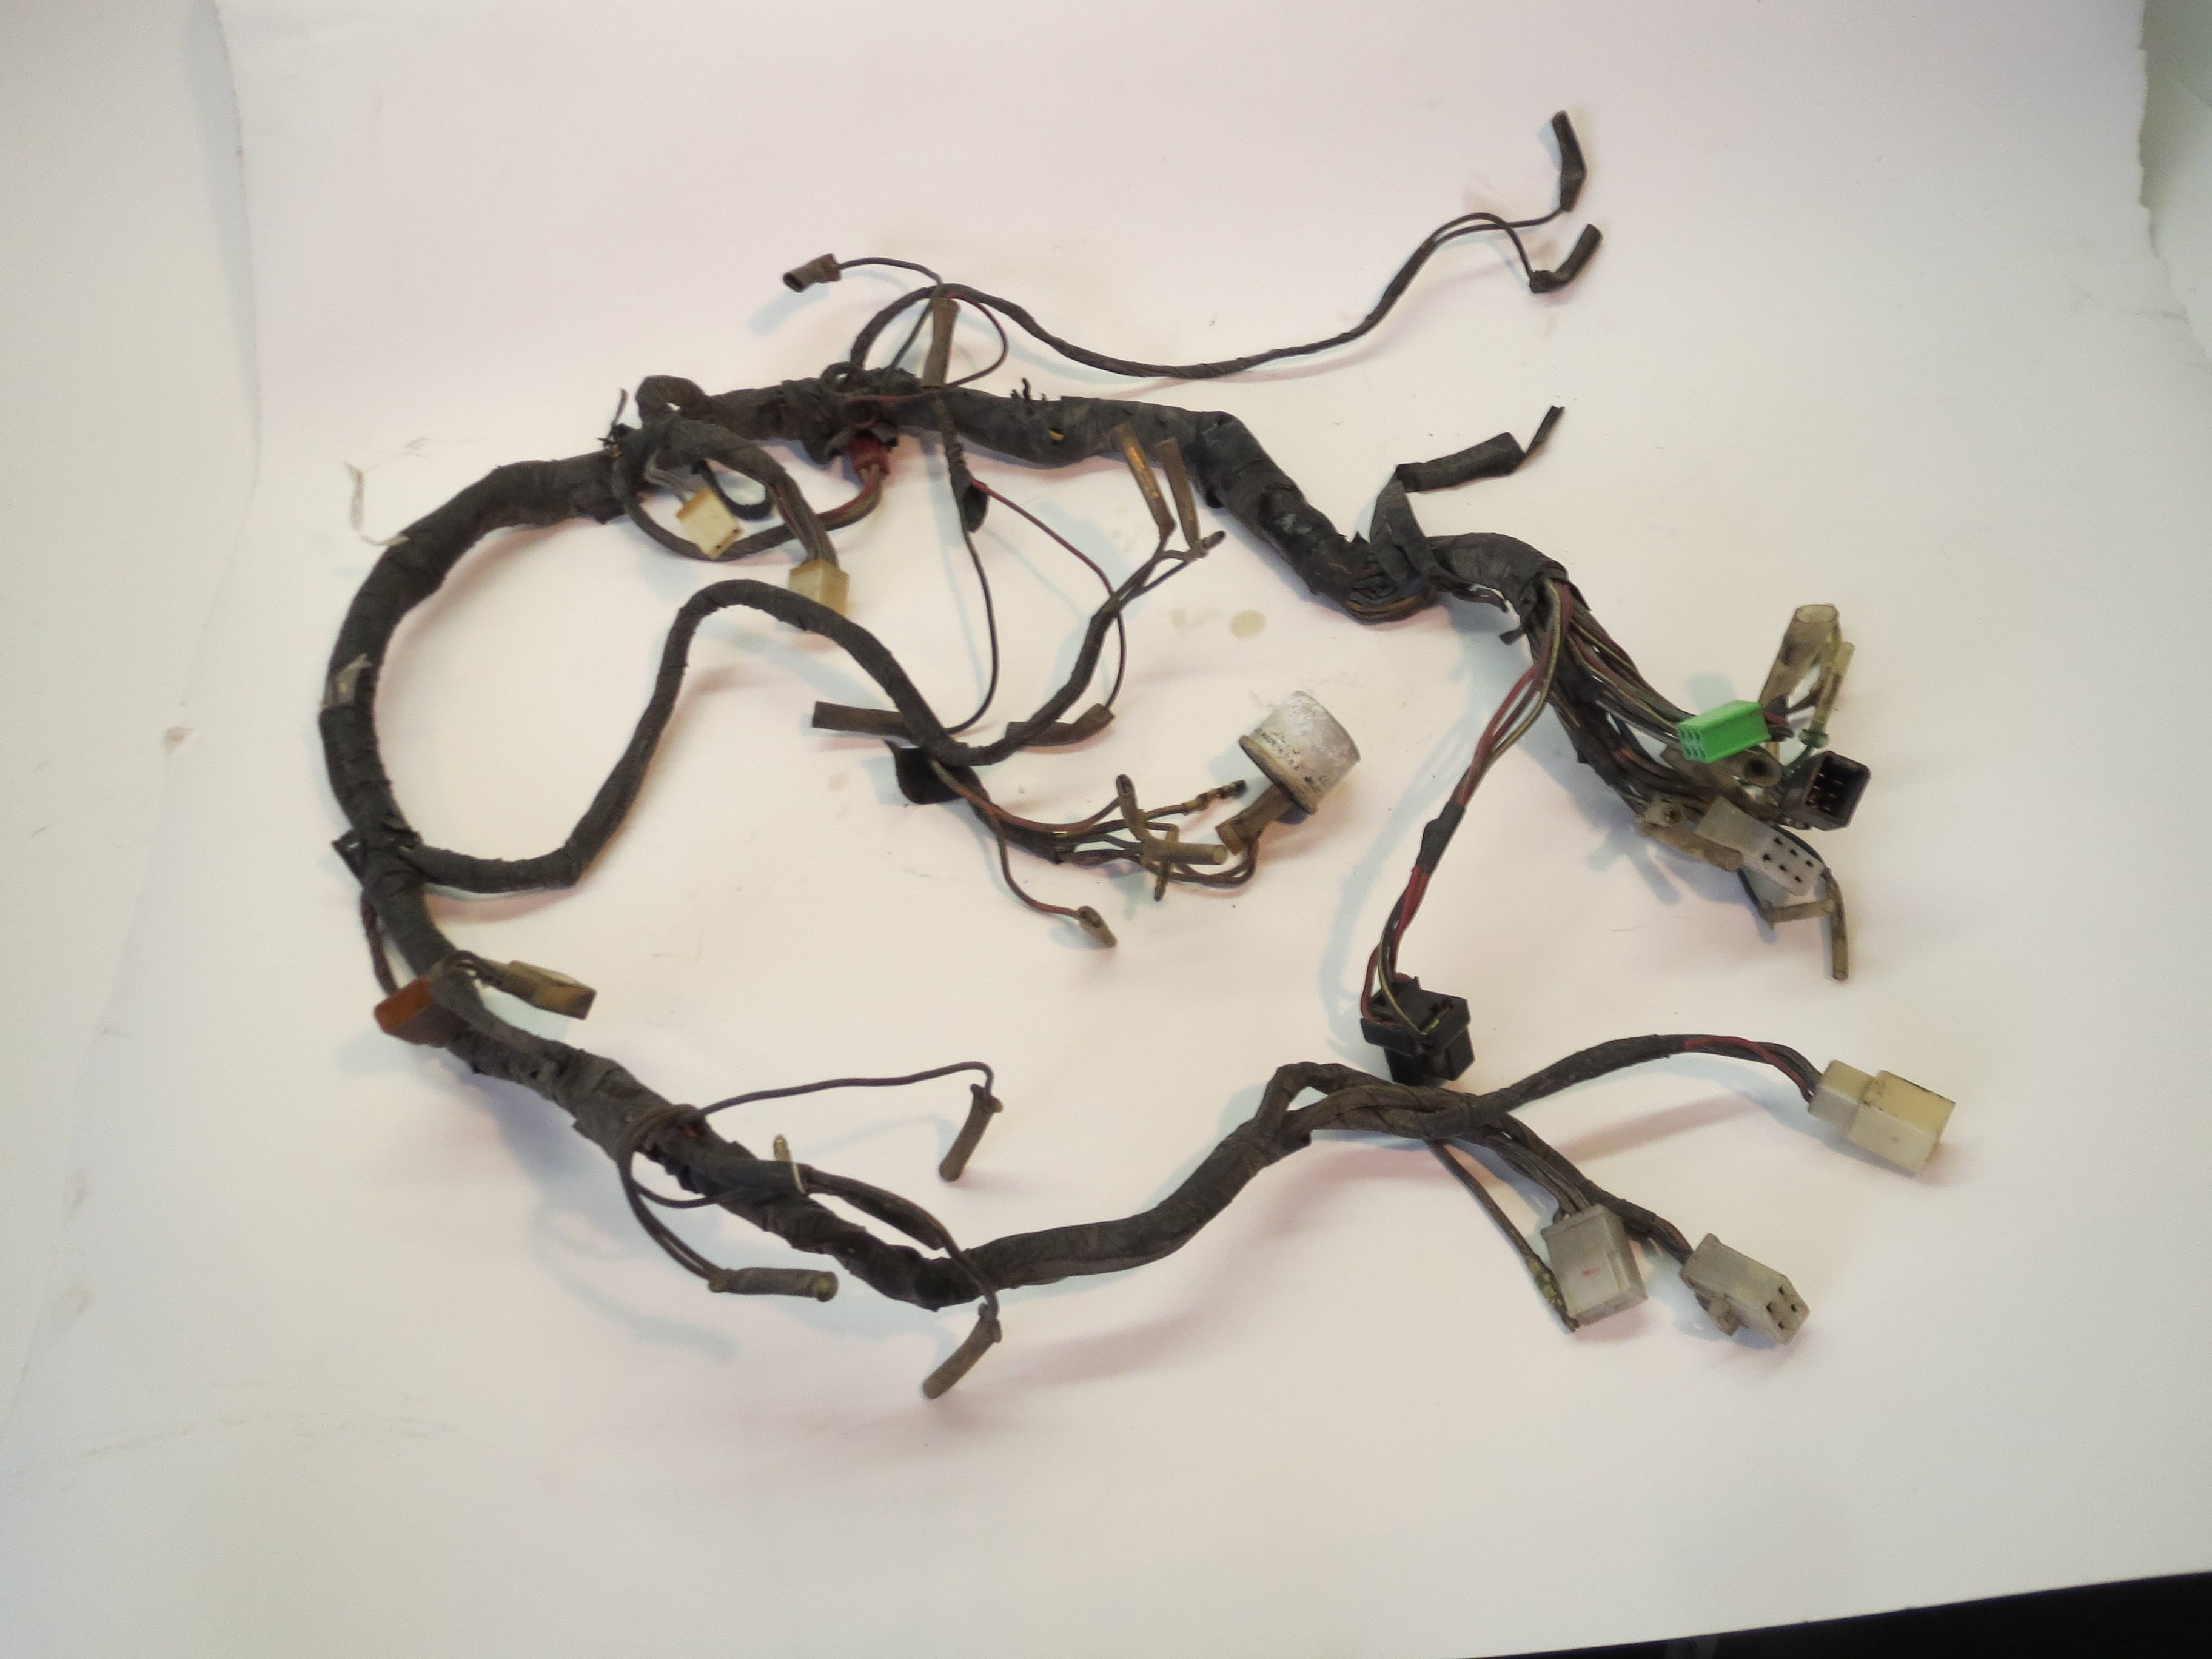 1978 Kawasaki Kz650 Wiring Harness 34 Diagram Images Wire 1977 650 64269 Csr Main 81 83 At Cita